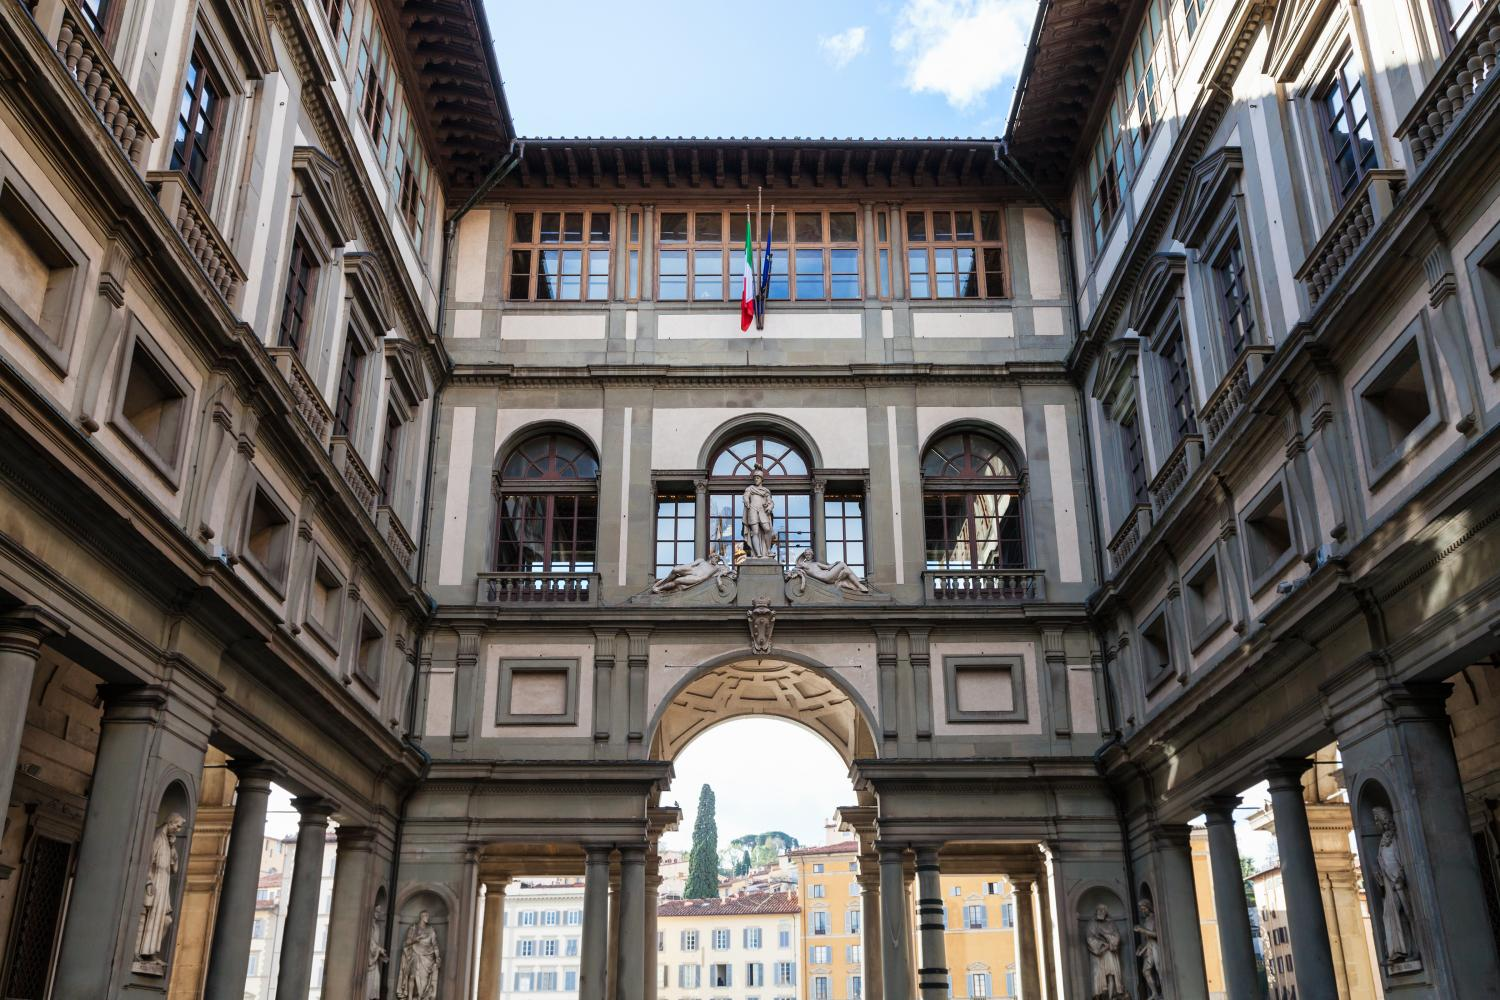 Italian Florence: Accademia (AM) And Uffizi (PM) Galleries Visit With